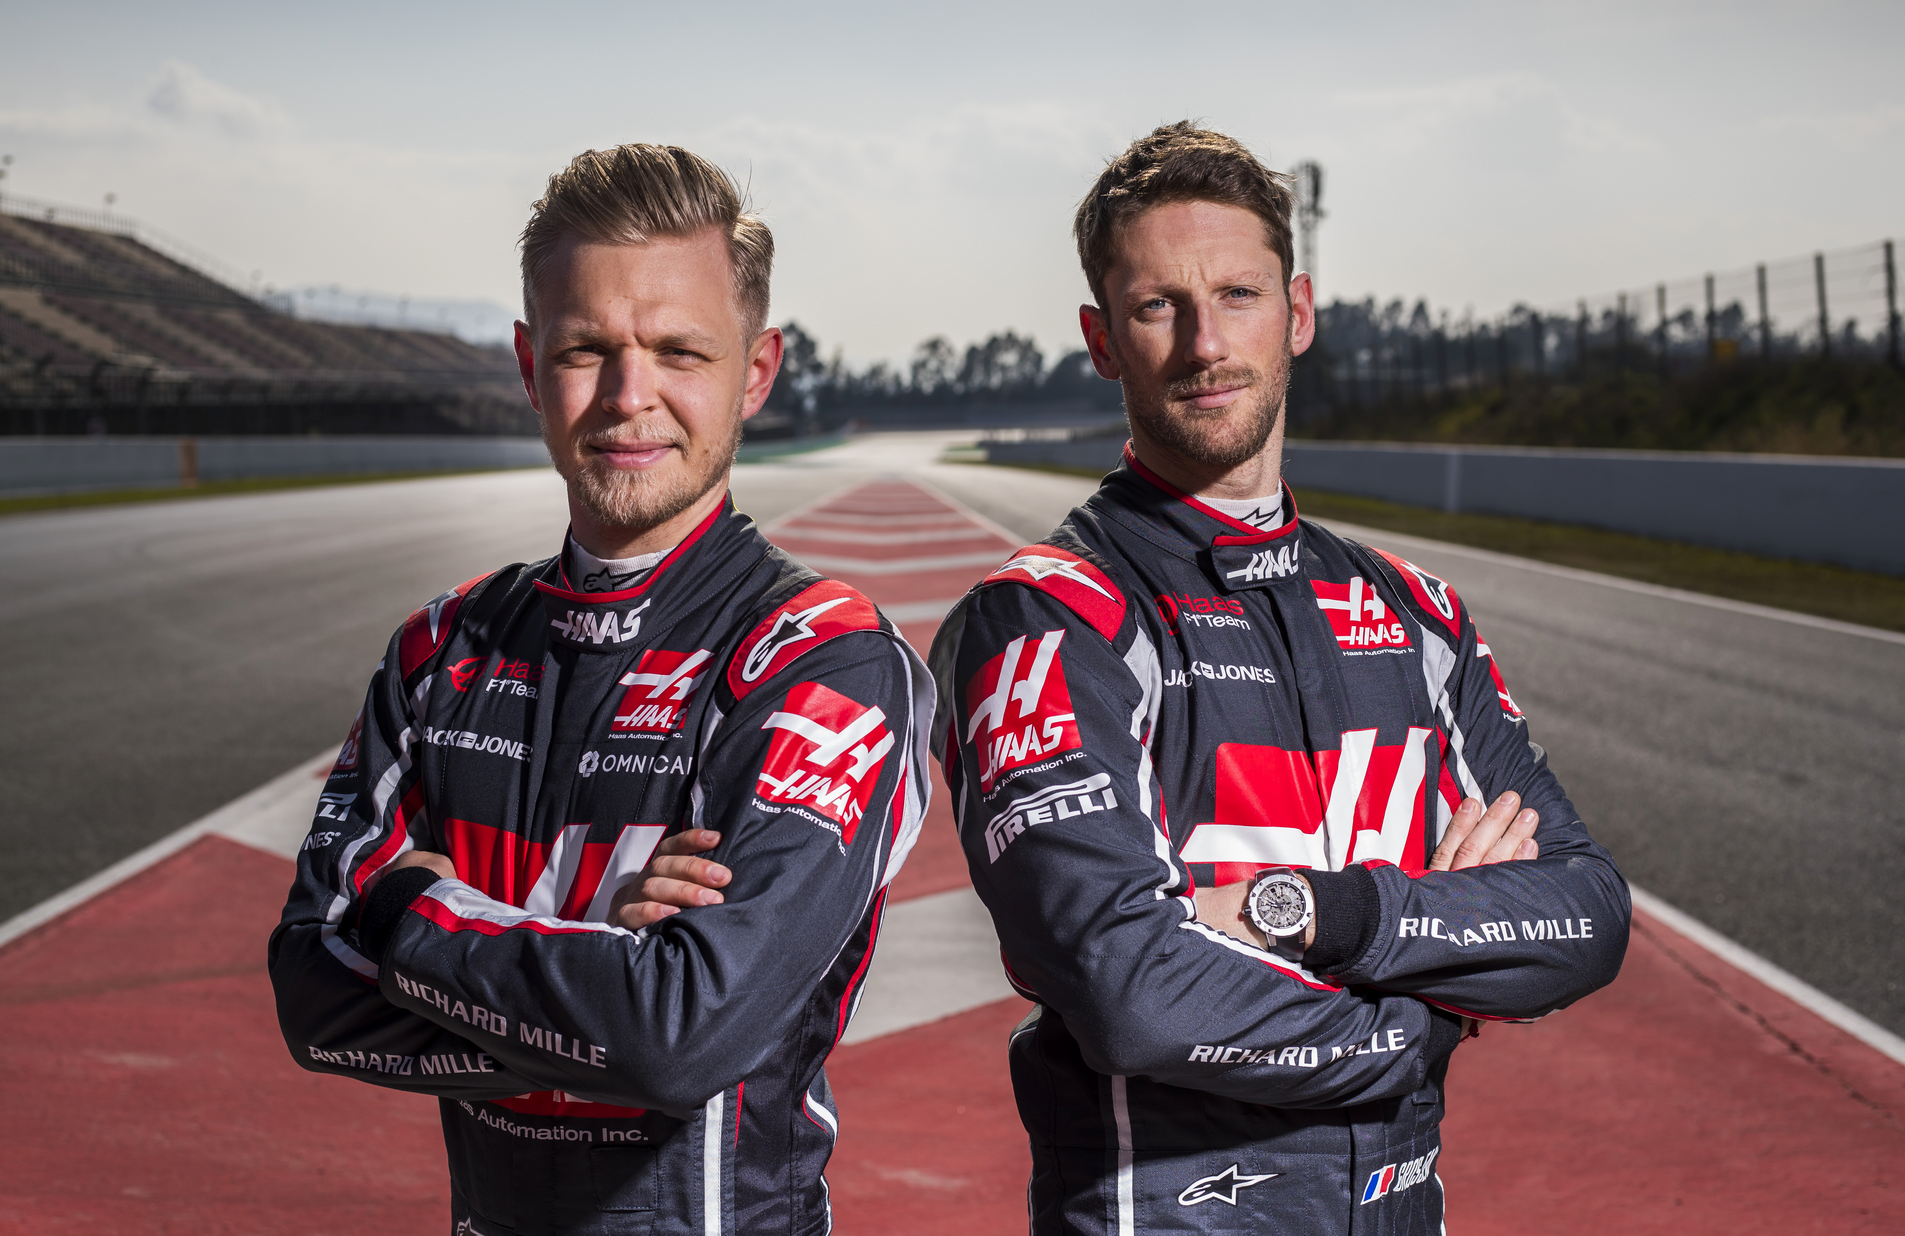 Haas F1 Team: Barcelona Test, Day 2 Recap